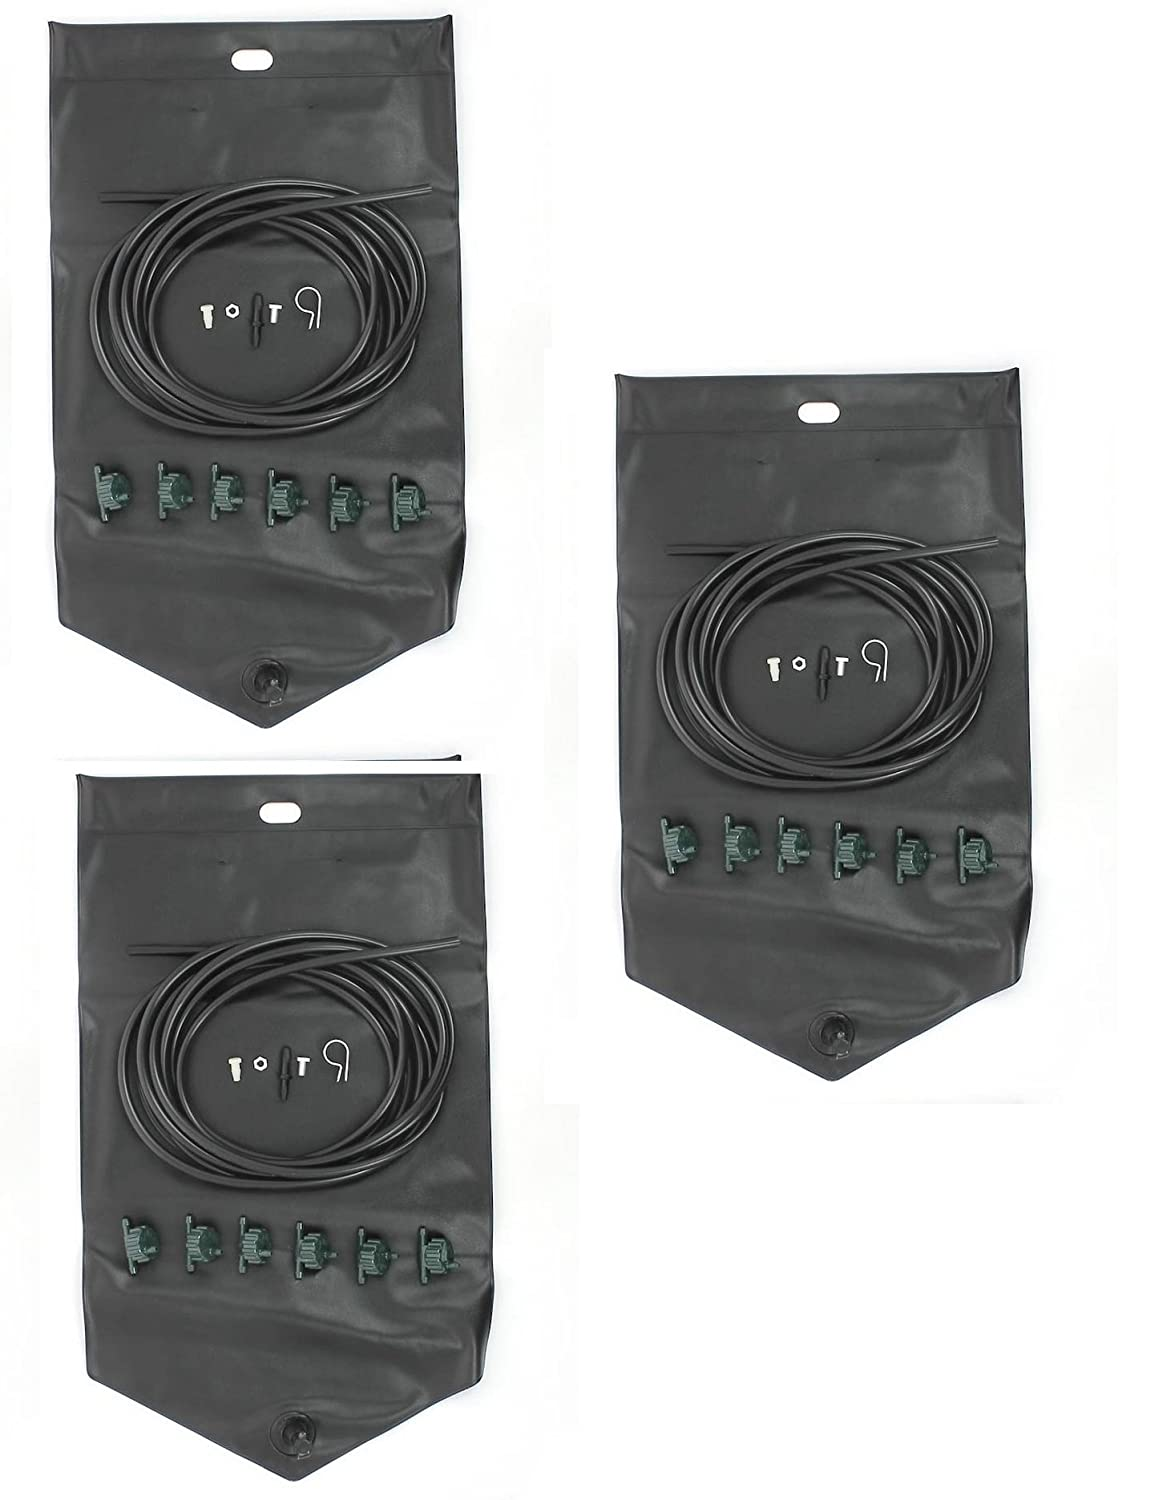 18 station automatic plant watering system from Britten and James. Professional quality drip irrigation. Take care of up to 18 pots, trays or containers while you're away. A simple and very reliable gravity fed system consisting of three large, tough 10.5